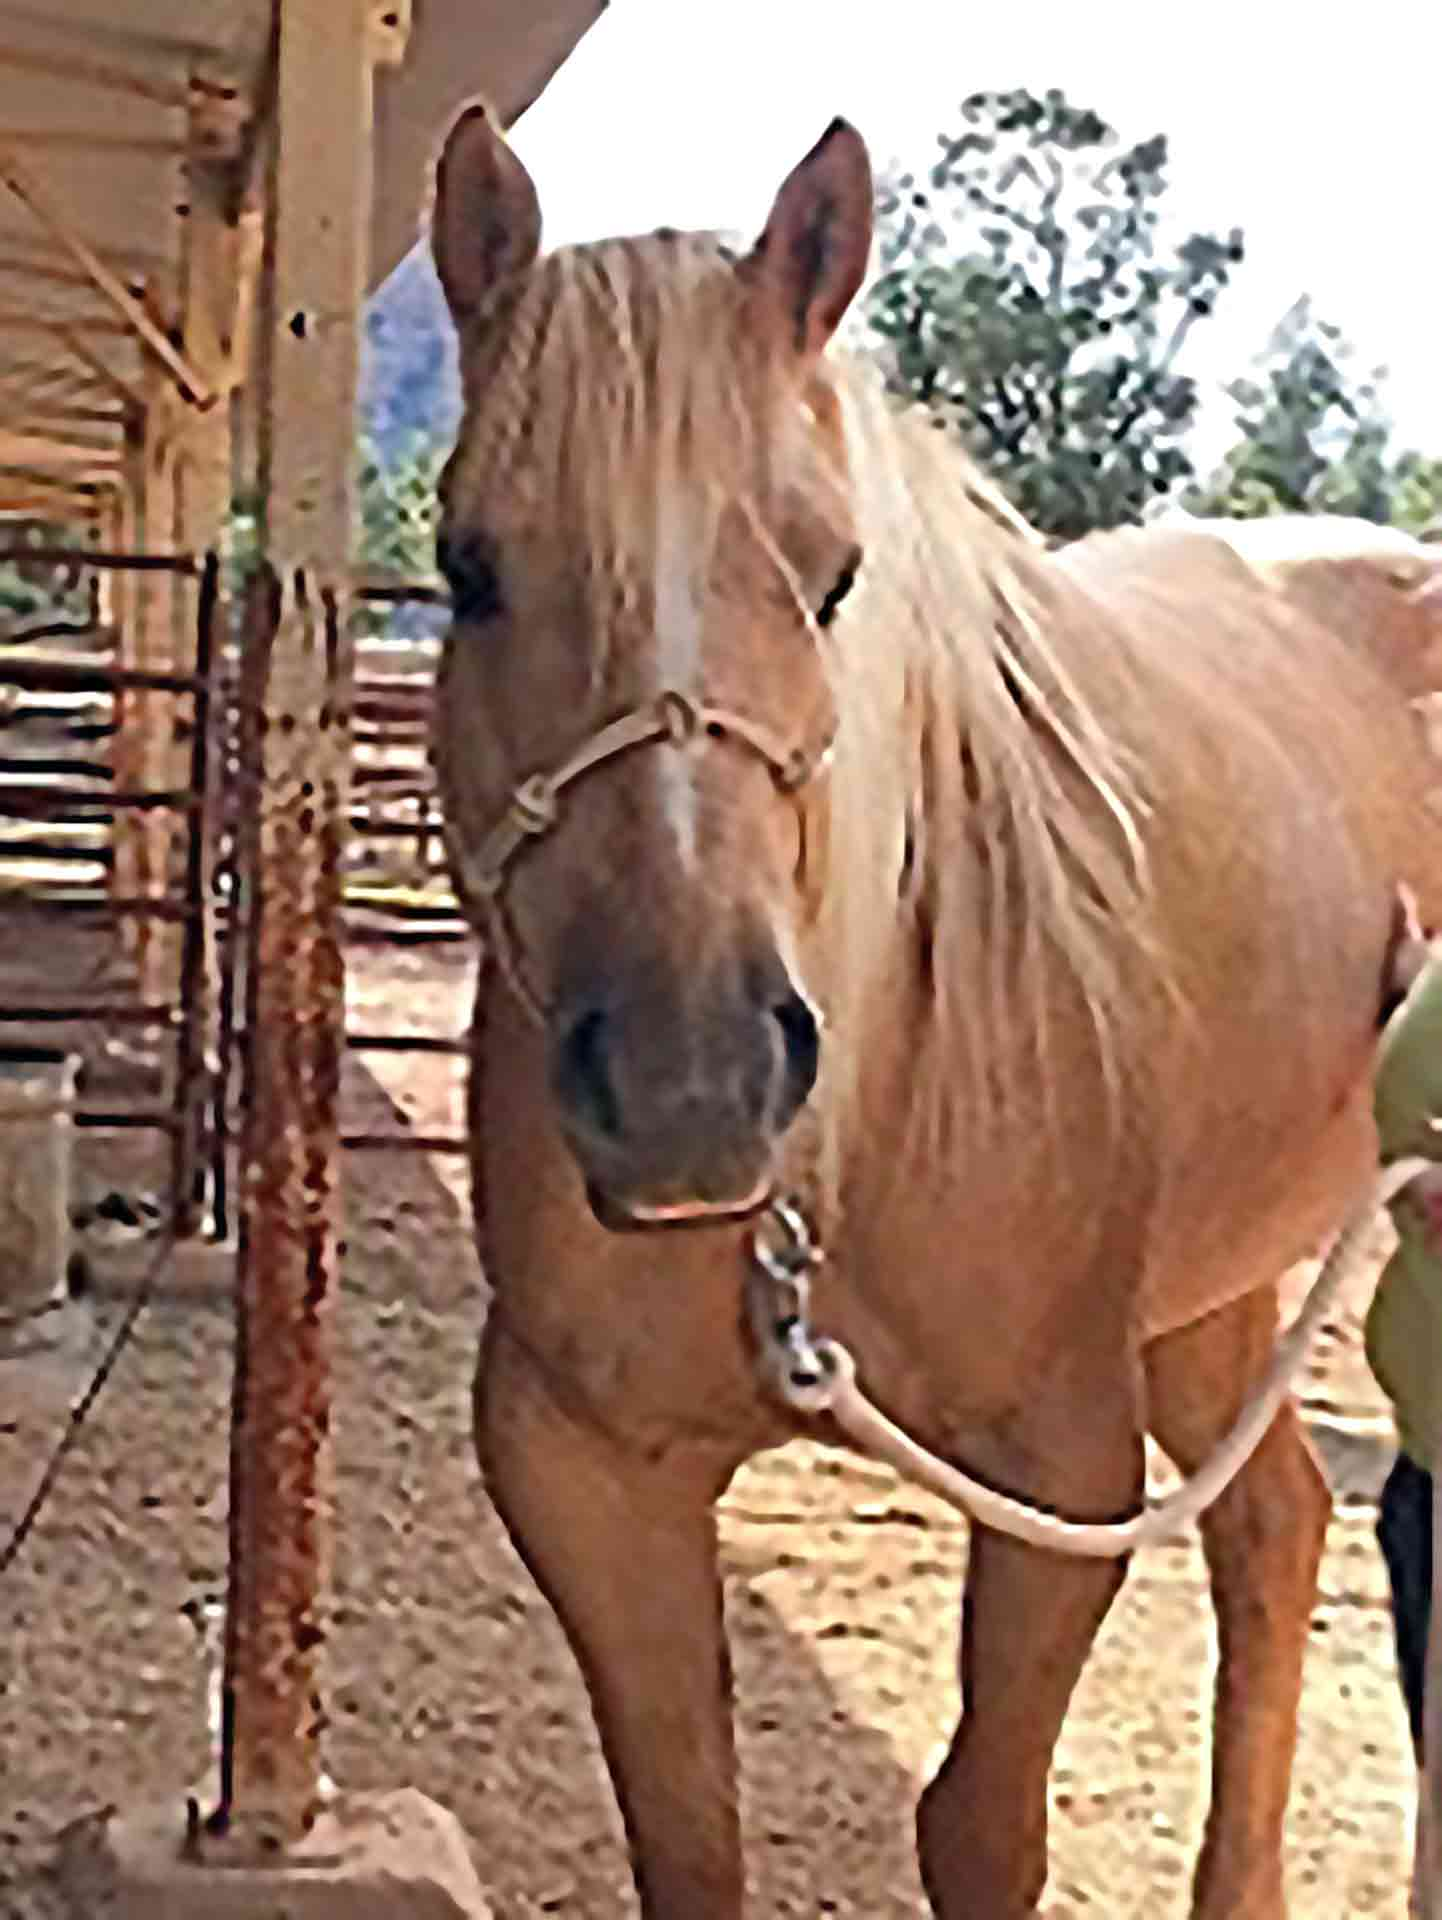 Khaleesi The Horse With Polysaccharide Storage Myopathy (PSSM)